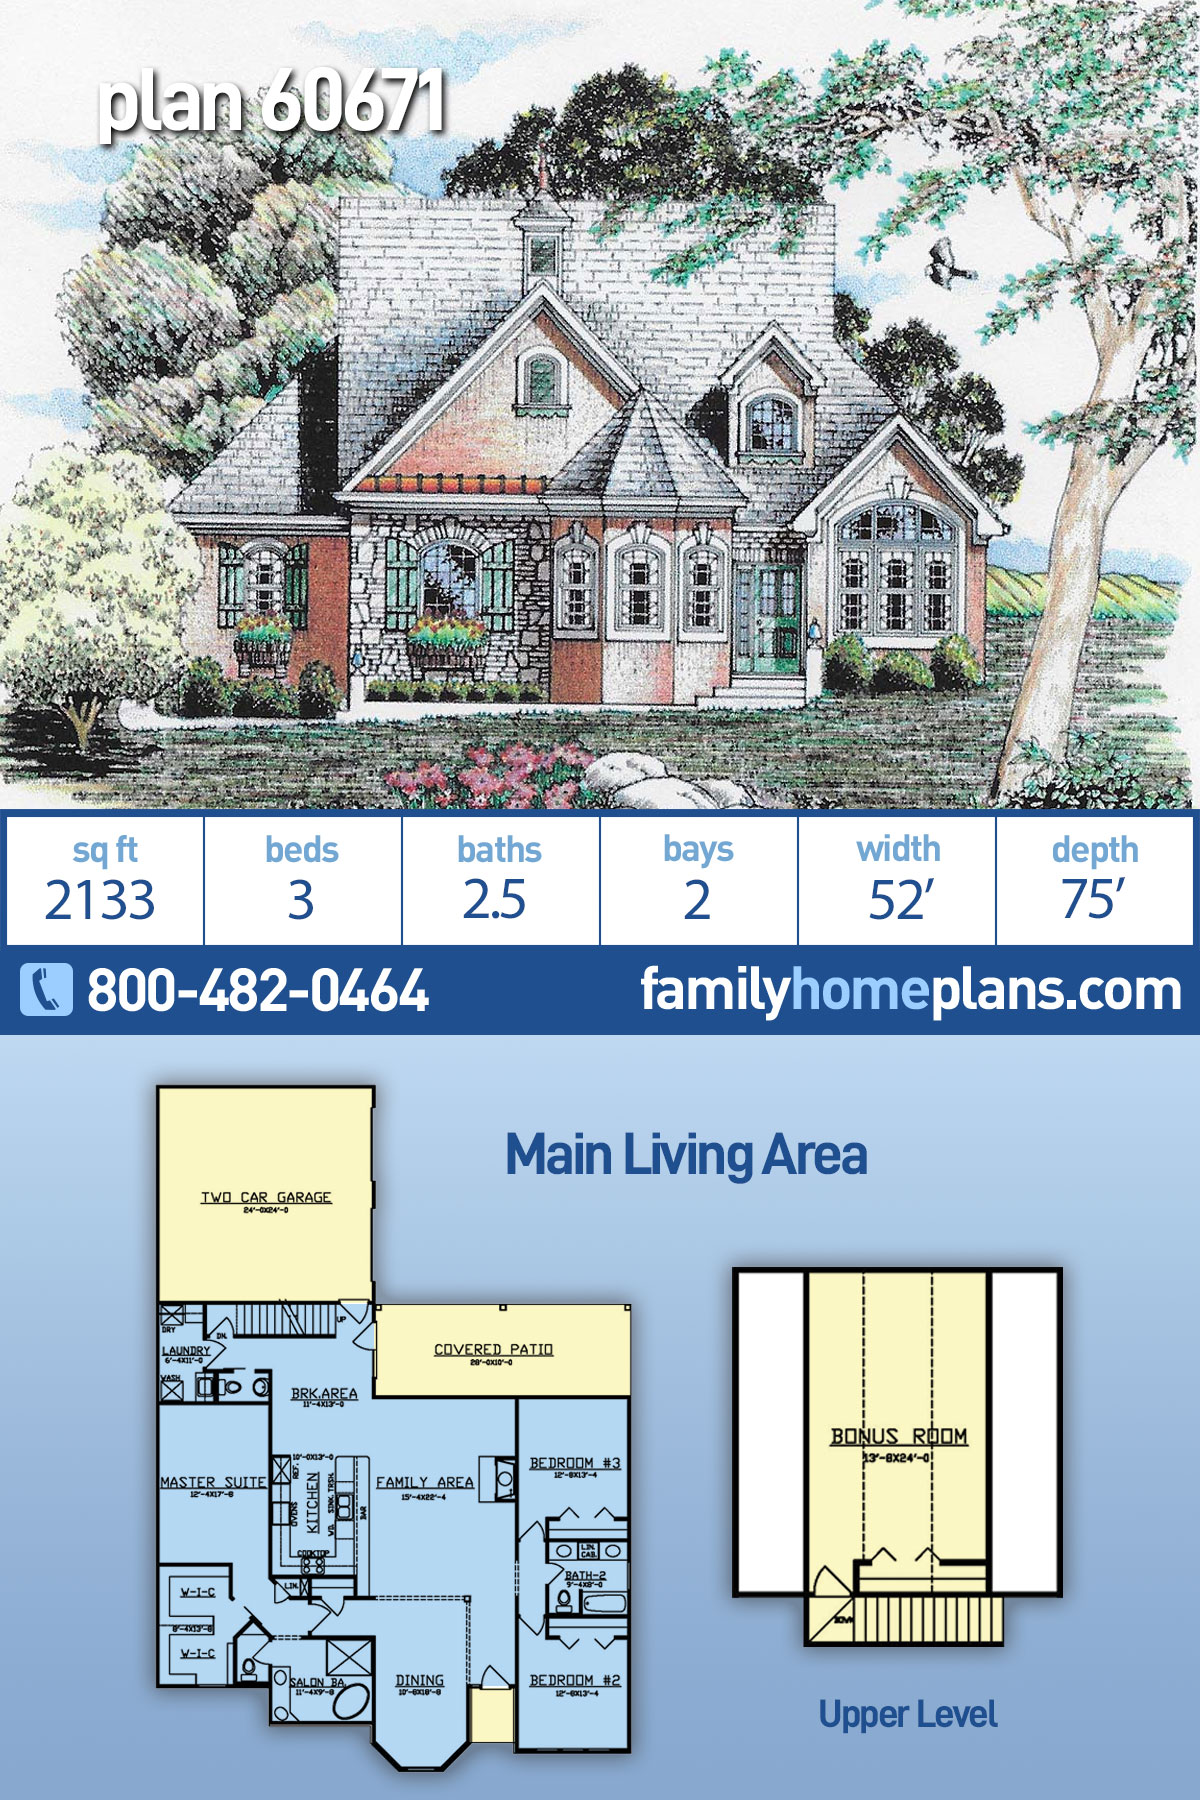 Traditional House Plan 60671 with 3 Beds, 3 Baths, 2 Car Garage